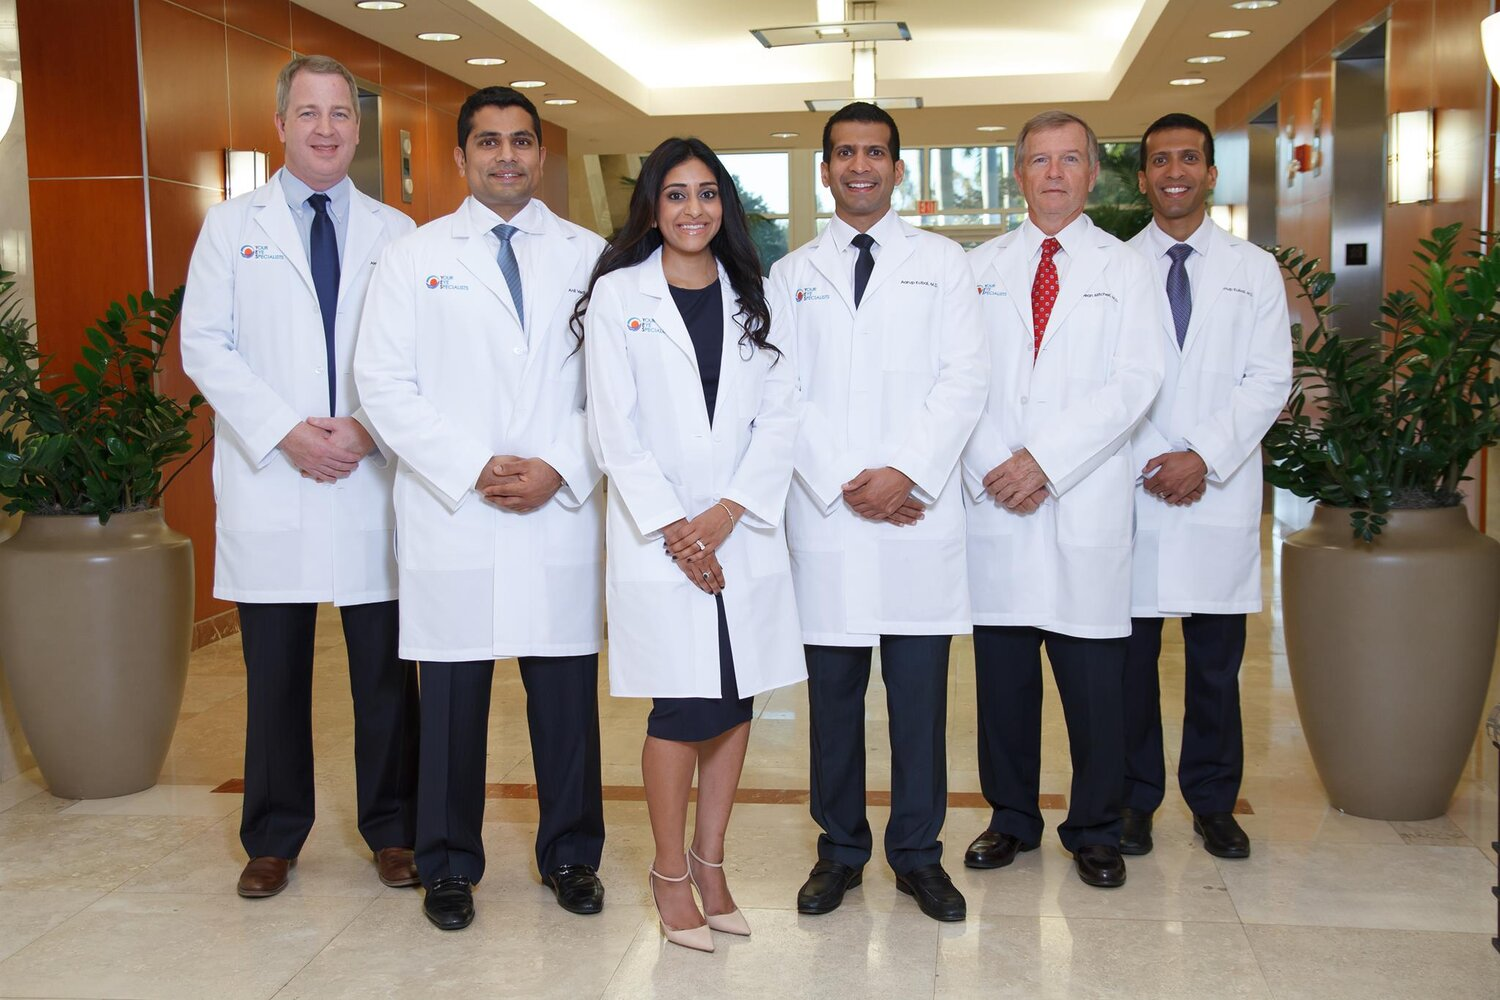 Your Eye Specialists' great team of trusted doctors.